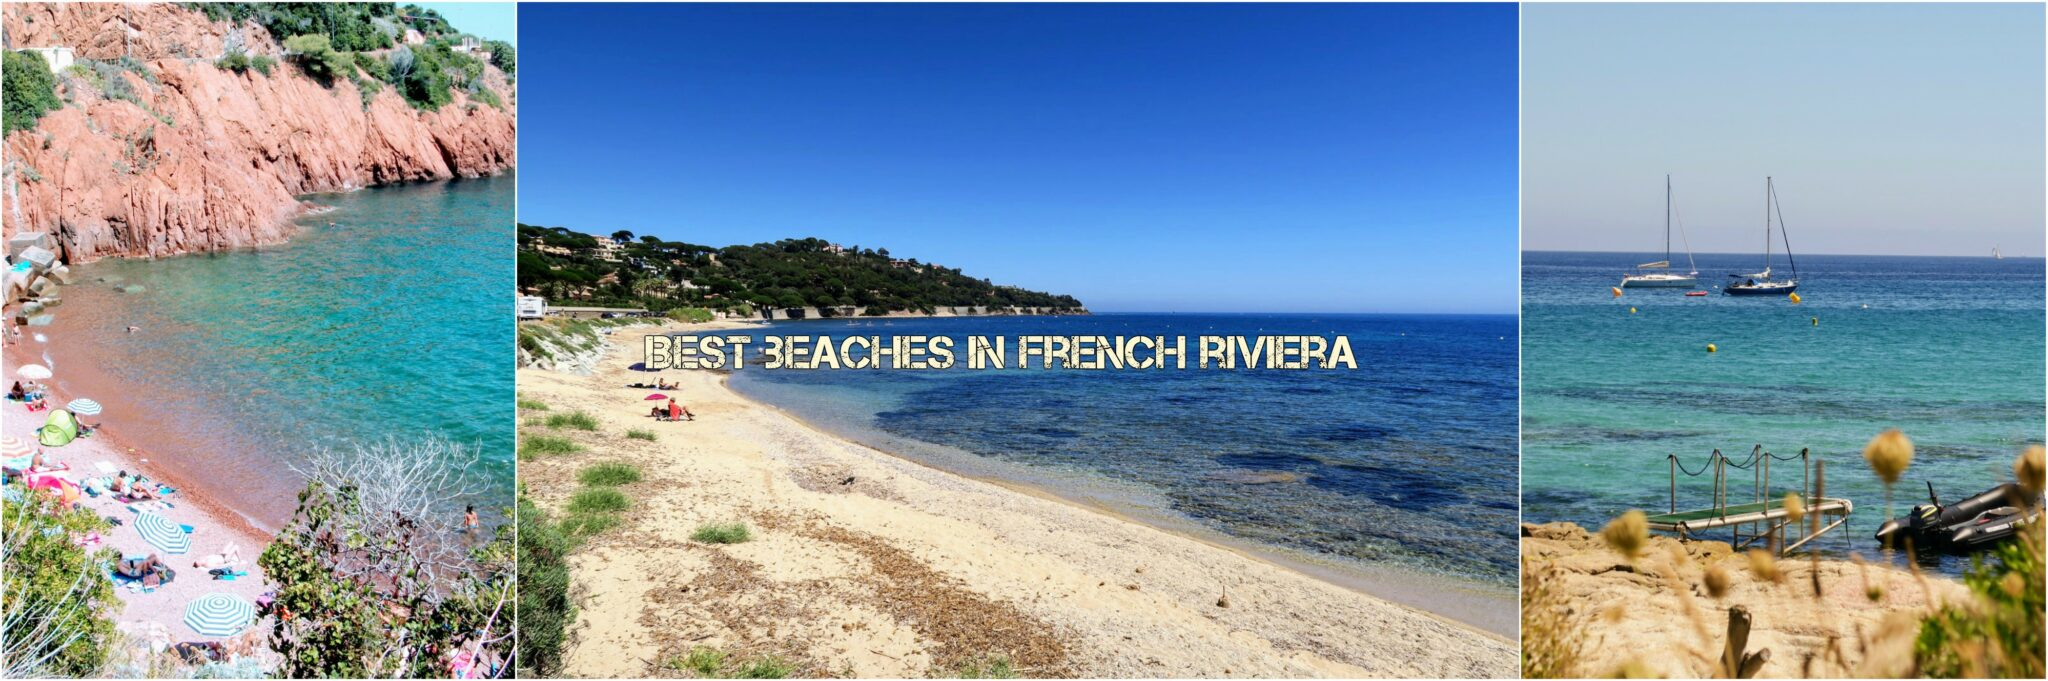 7 Best Beaches In French Riviera